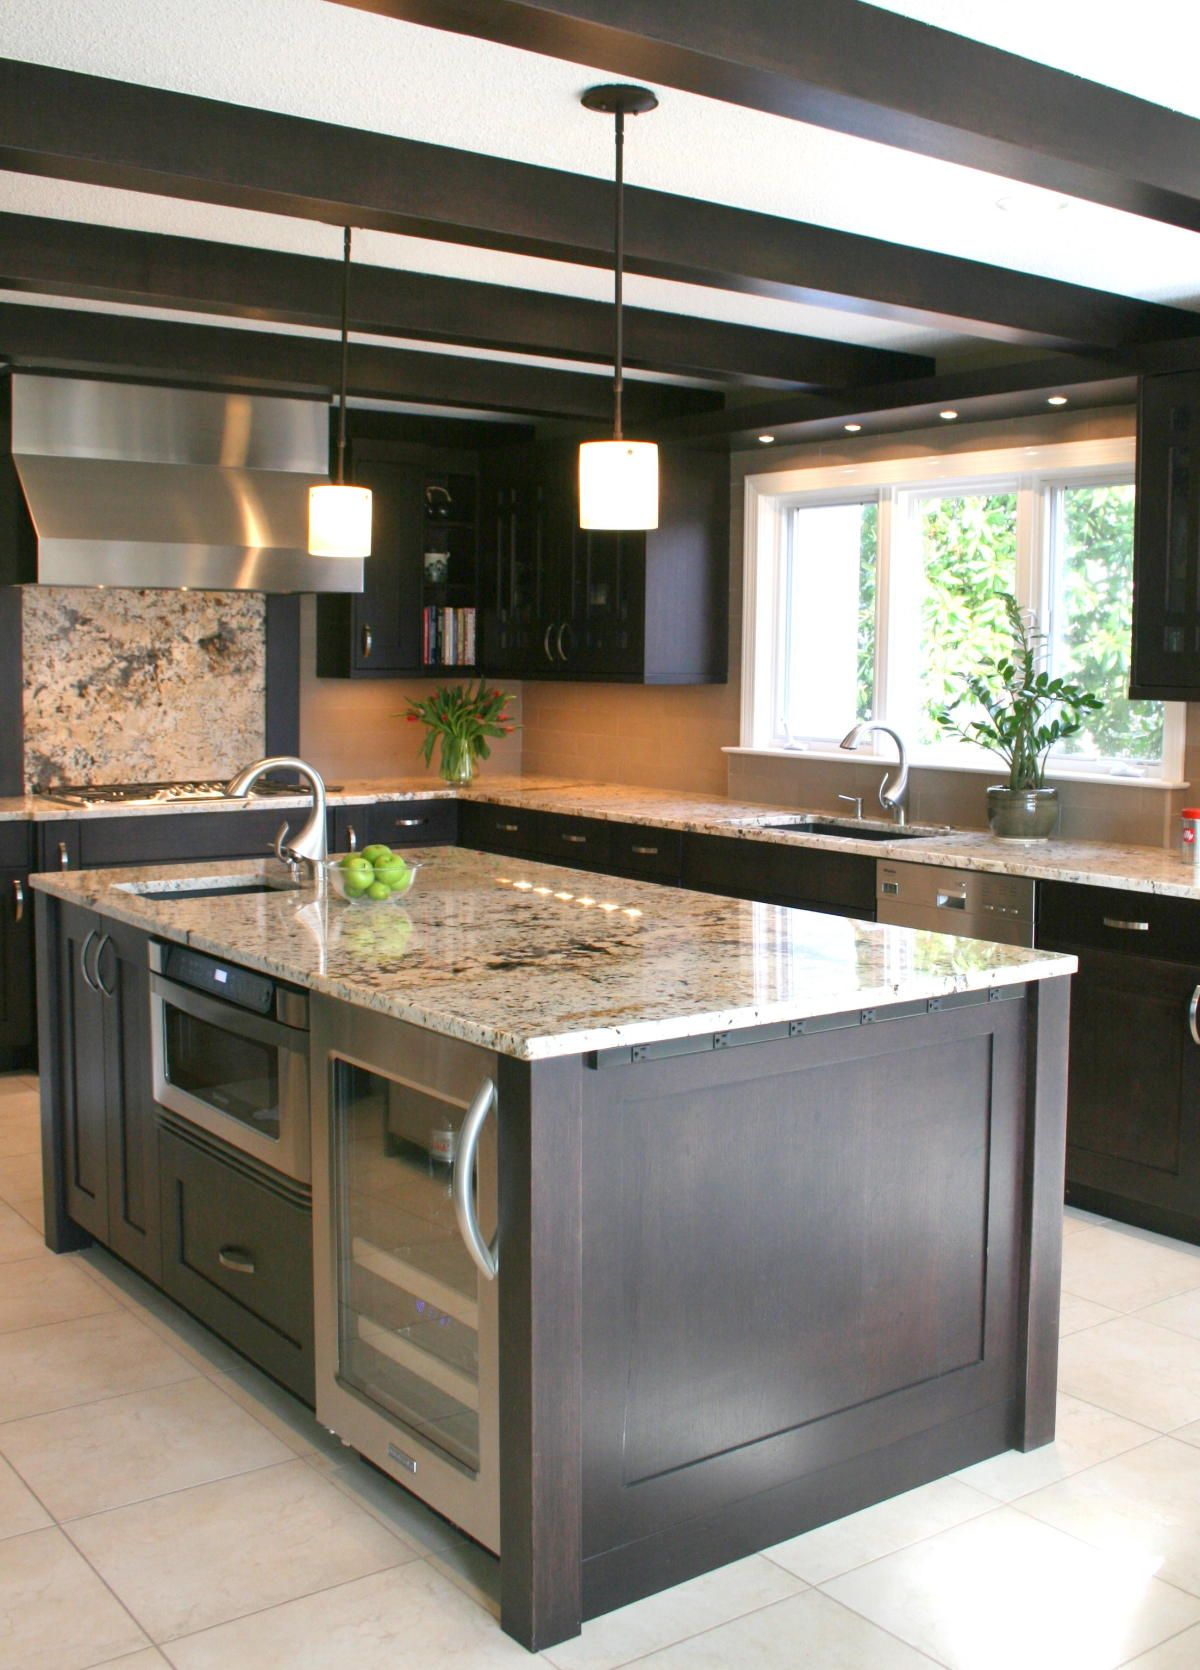 Ideas For Kitchen Islands In Small Kitchens Small Kitchens With Islands Designs With Ultra Modern Hanging